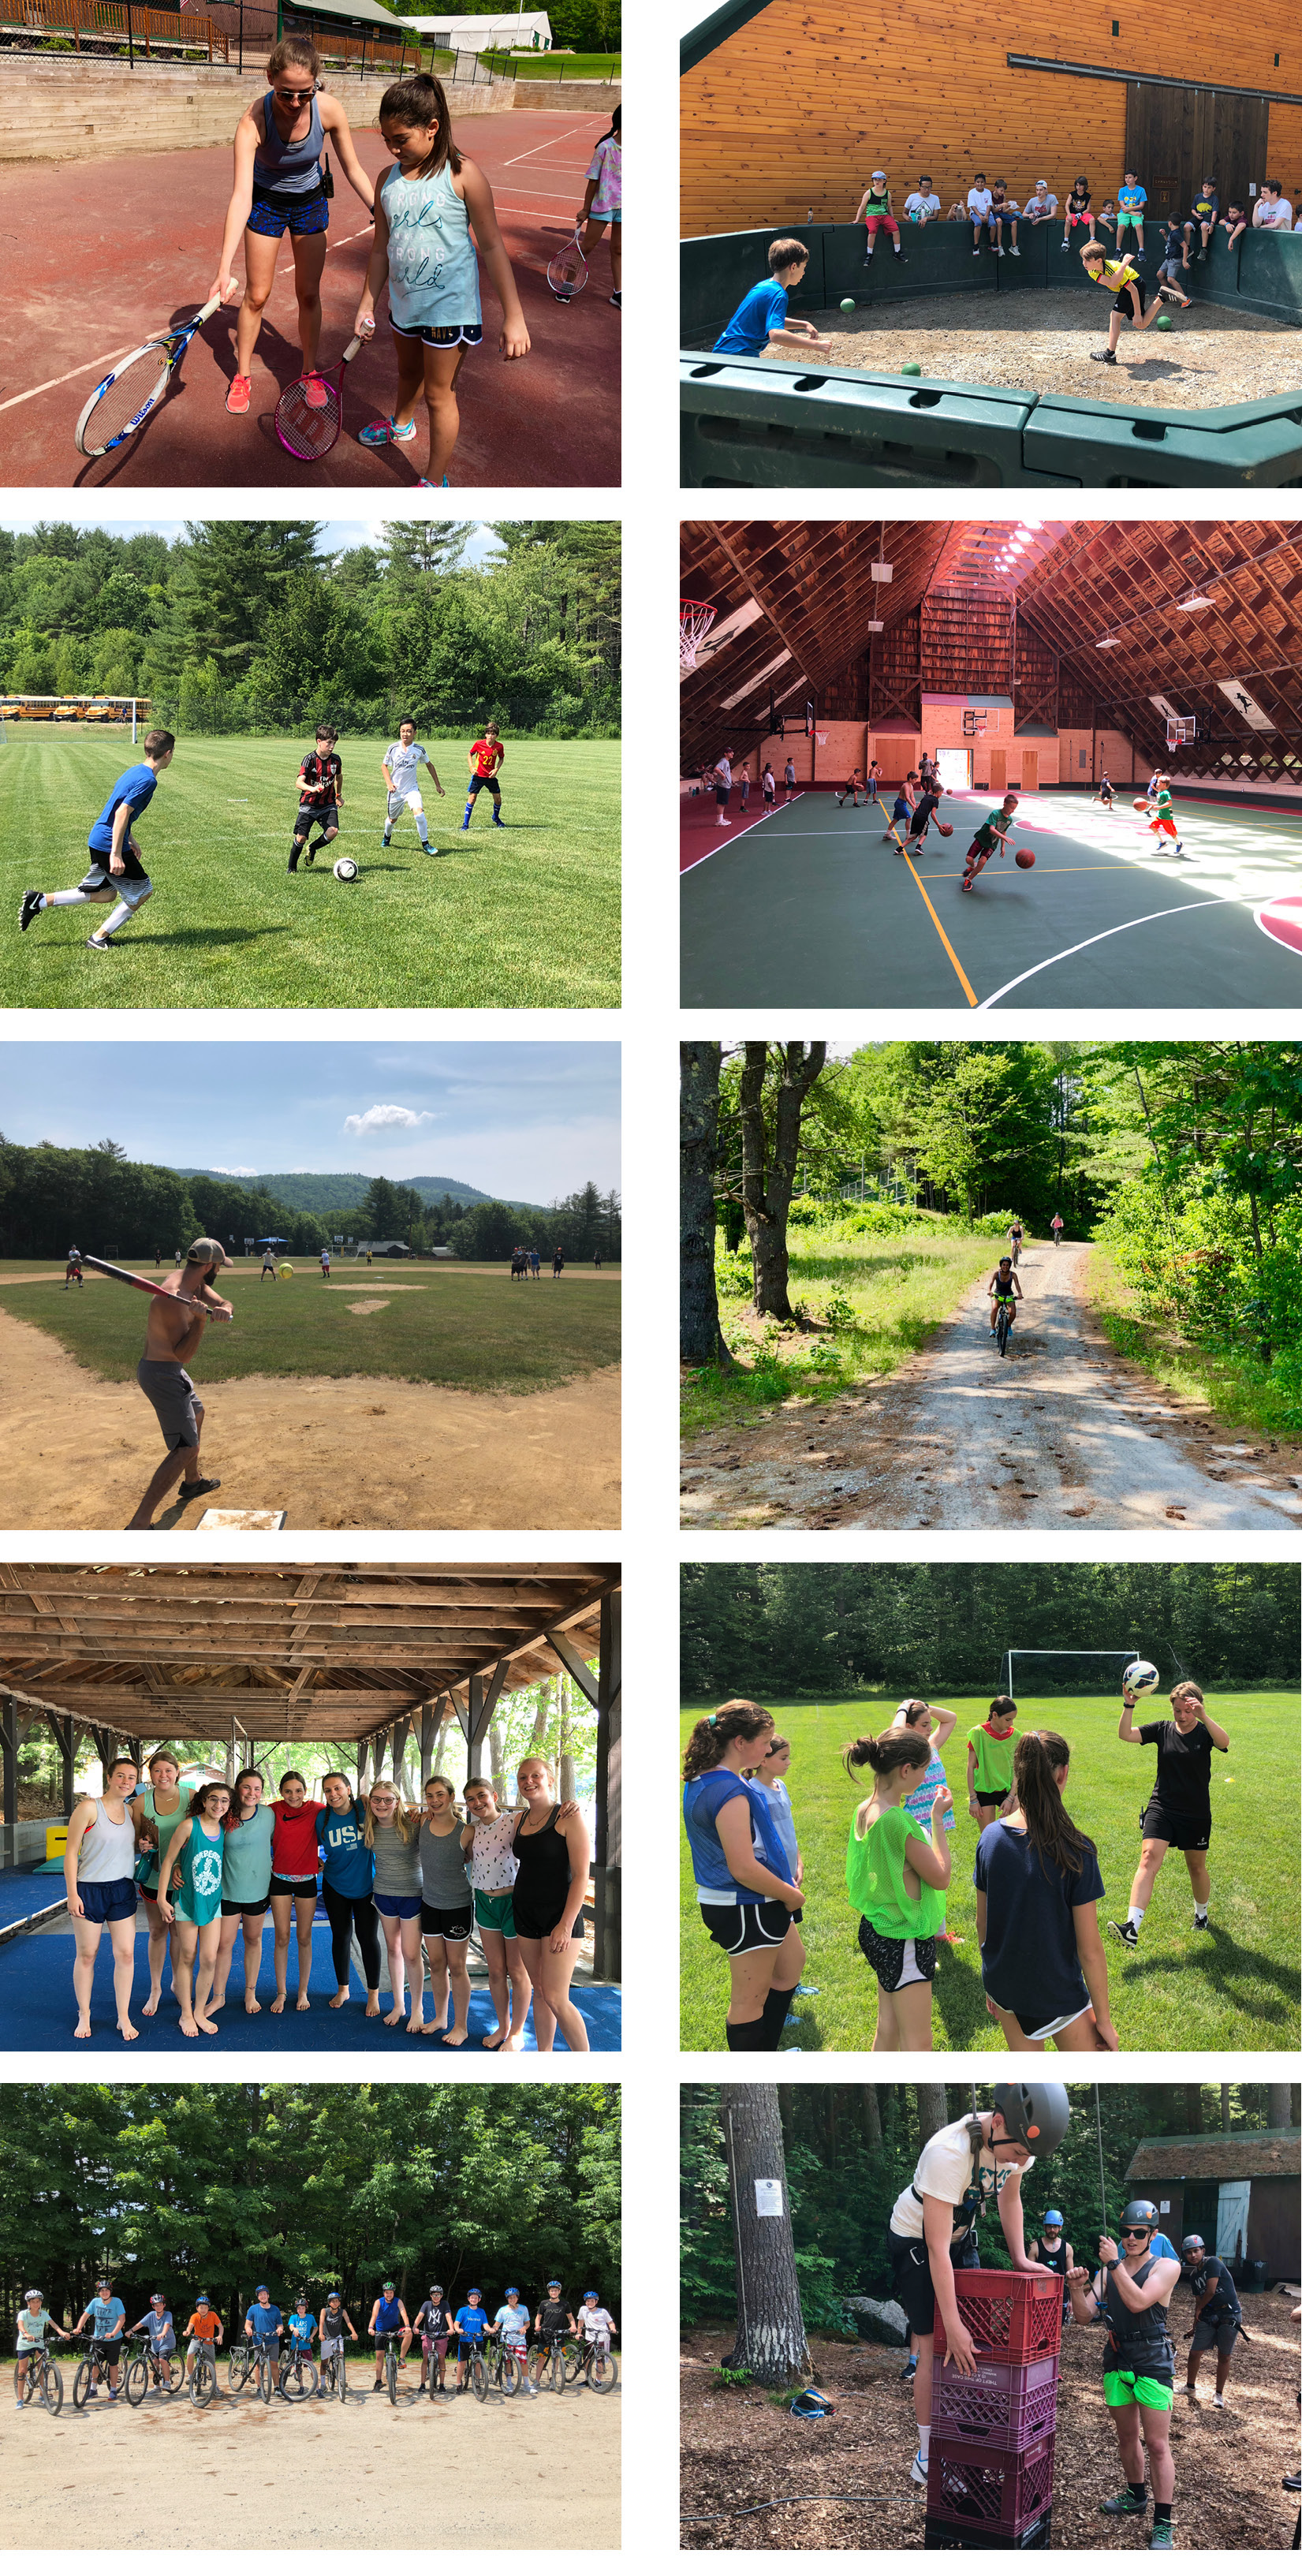 camp july 1 - sports